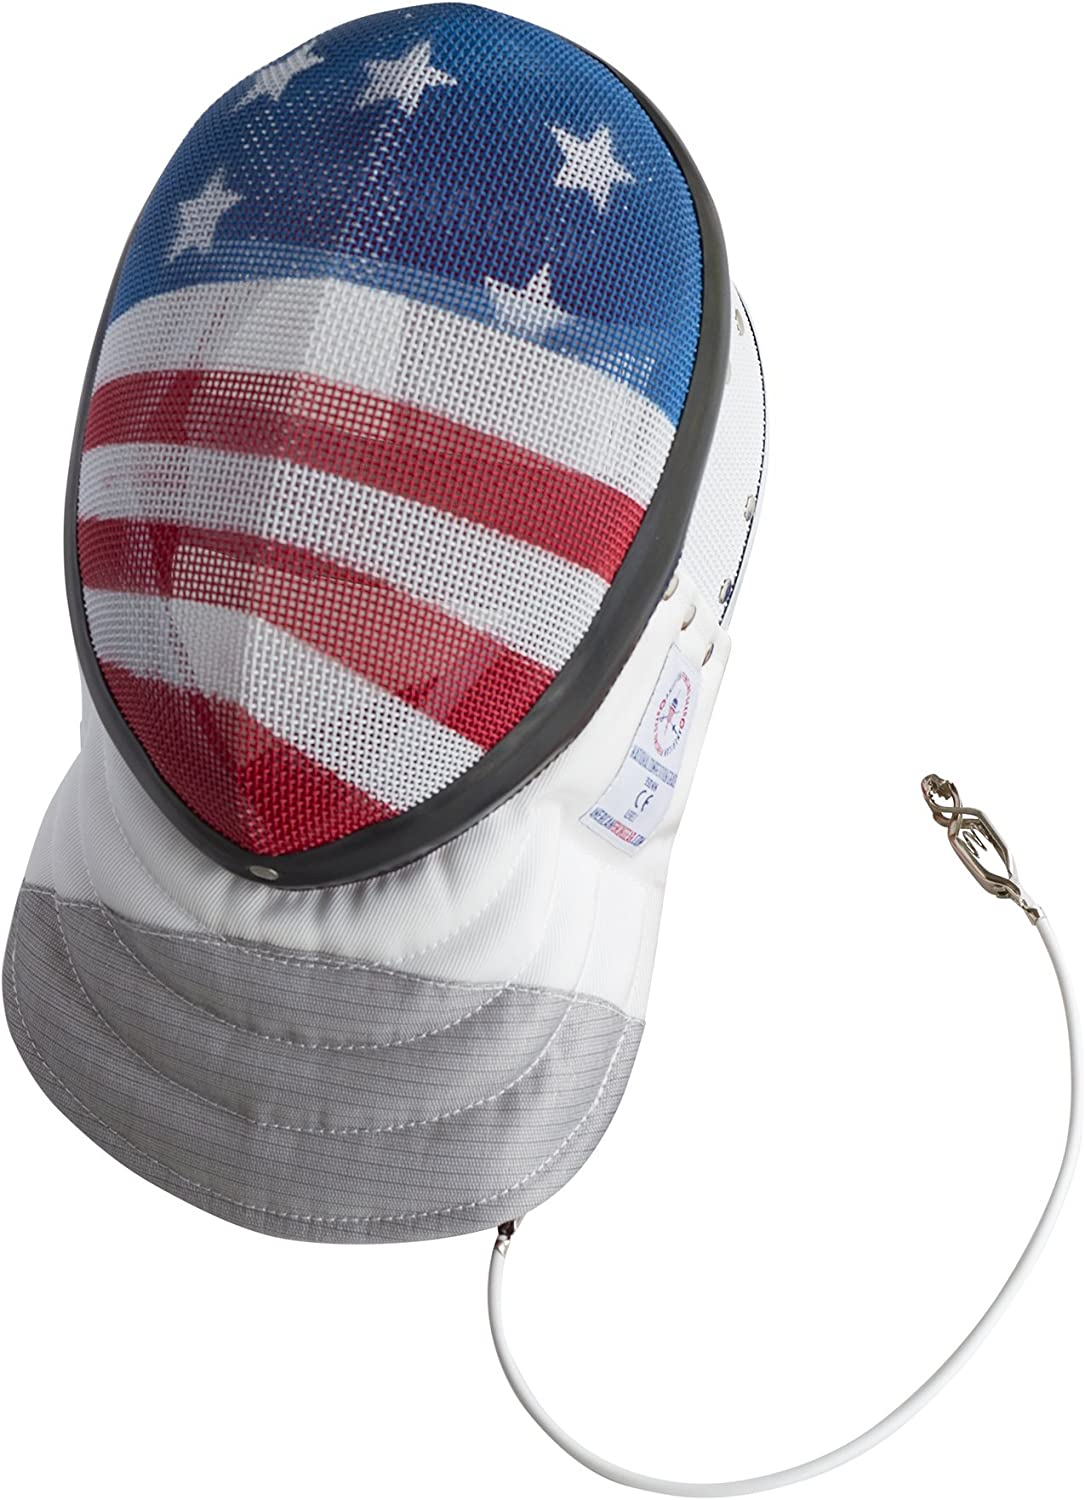 Denver Mall Easy-to-use American Fencing Gear Foil Mask CE350N Nationa Certified